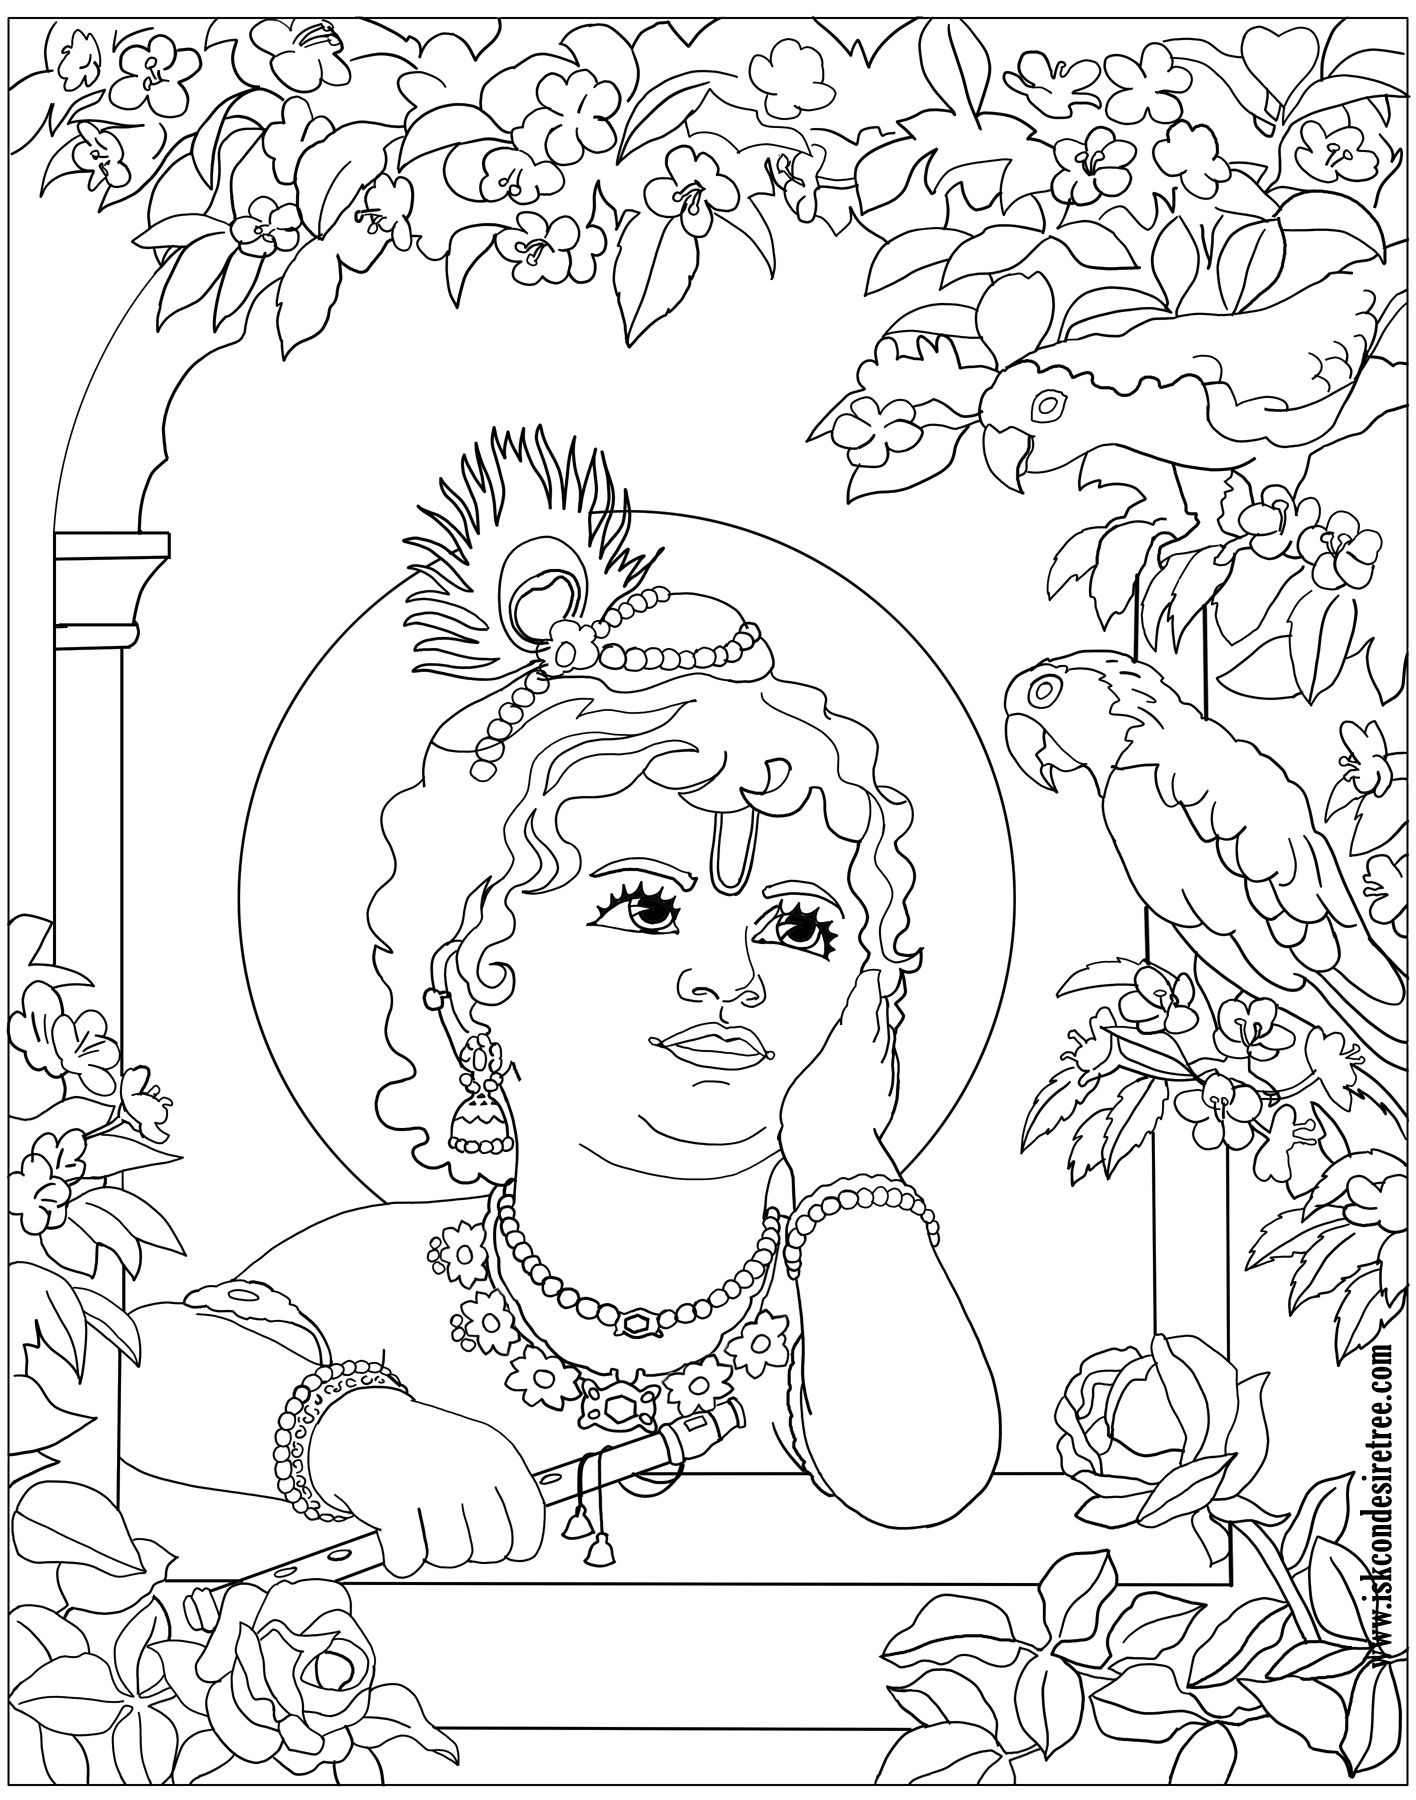 Krishna Coloring Pages Printable | Projects to Try | Pinterest ...